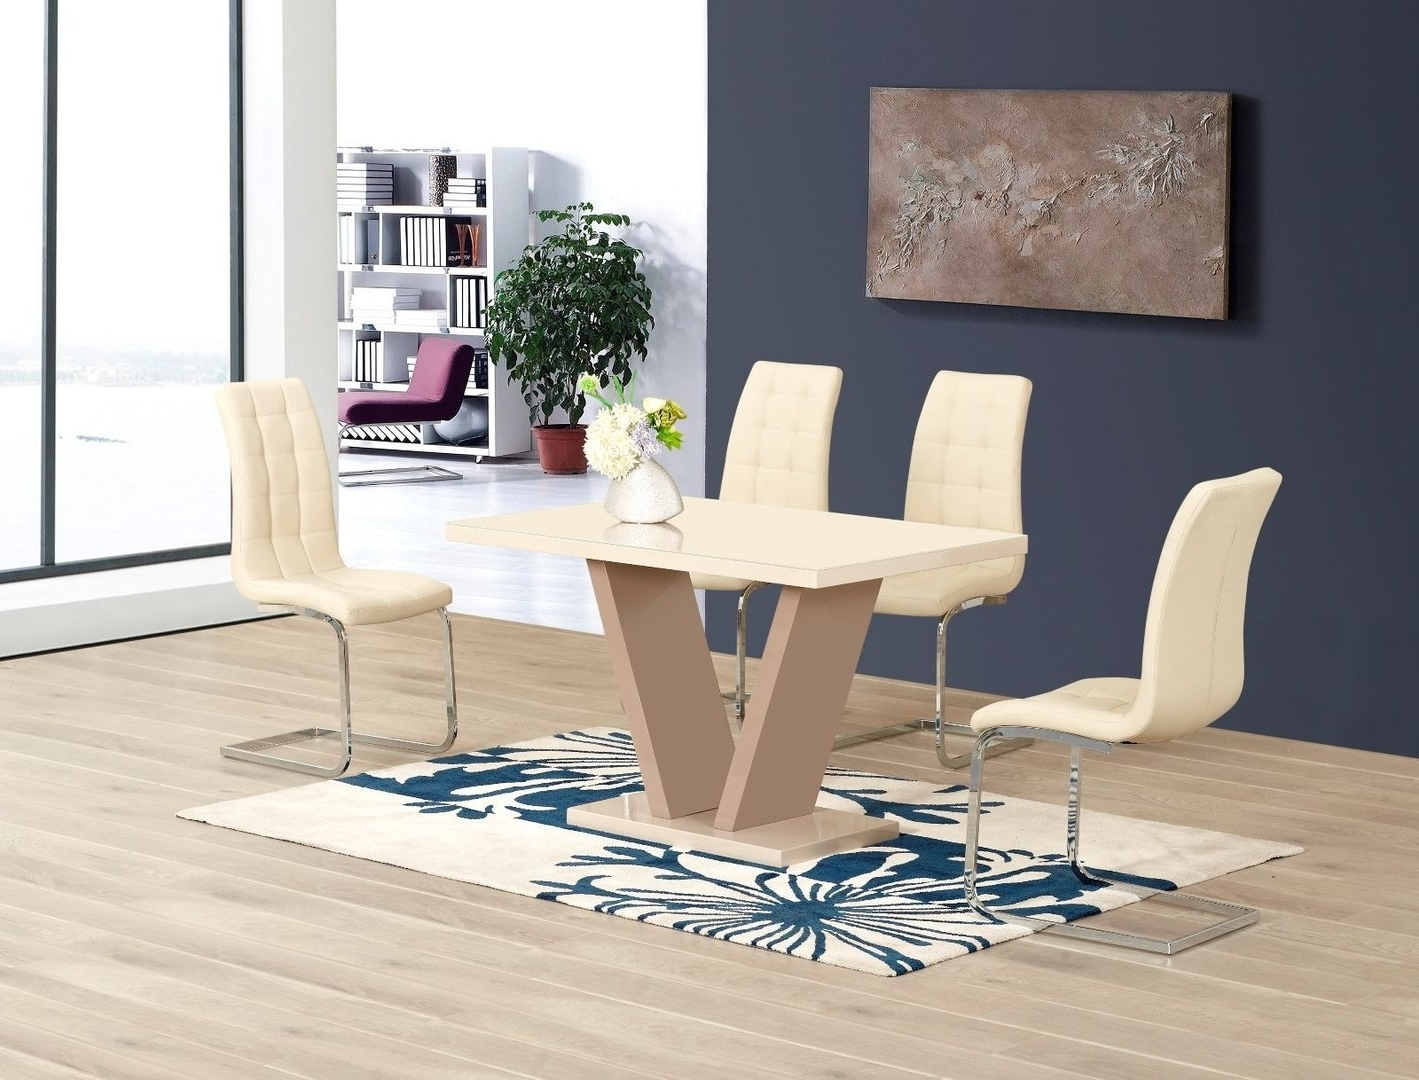 Cream High Gloss Glass Dining Table And 6 Chairs – Homegenies Throughout Most Recently Released Black High Gloss Dining Chairs (Gallery 25 of 25)